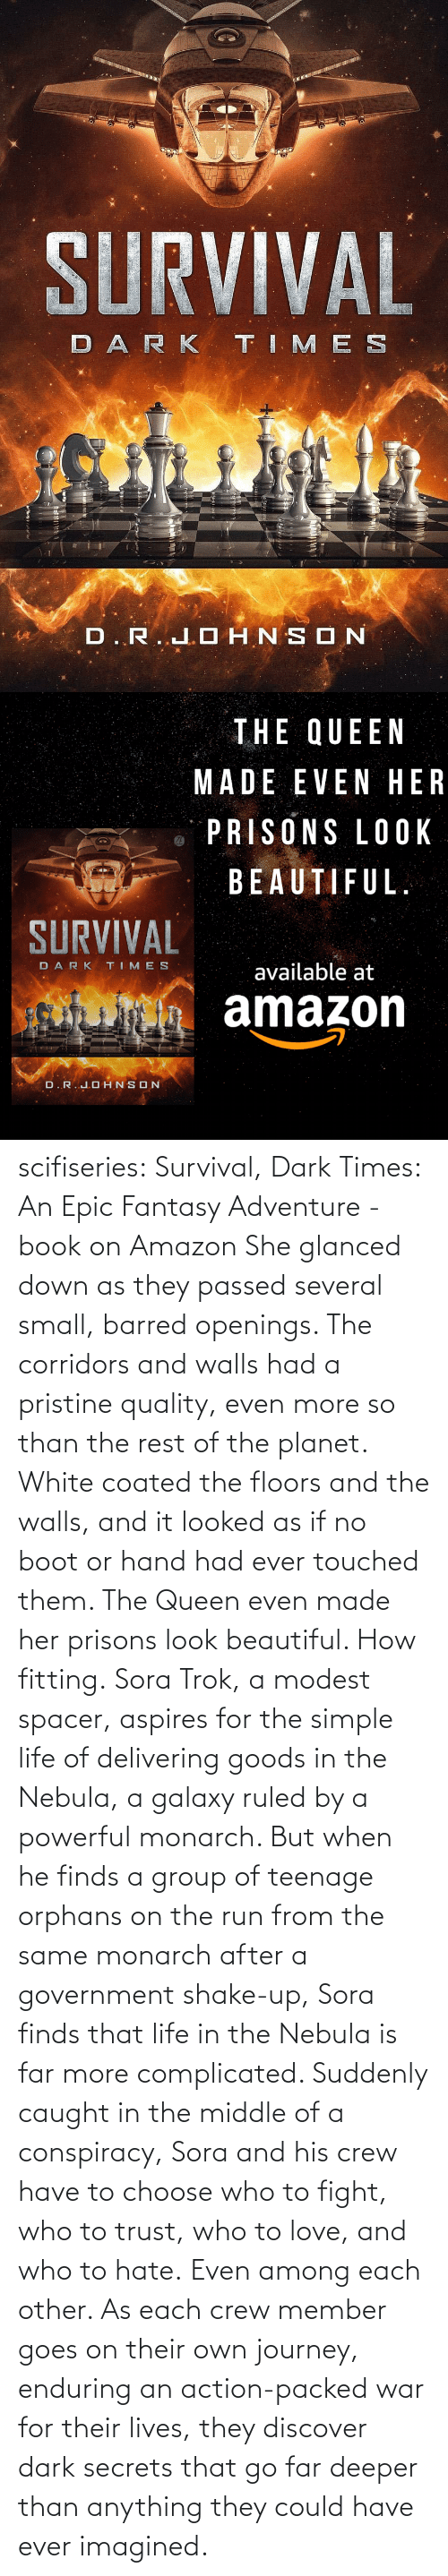 amazon.com: scifiseries: Survival, Dark Times: An Epic Fantasy Adventure - book on Amazon  She glanced down as they  passed several small, barred openings. The corridors and walls had a  pristine quality, even more so than the rest of the planet. White coated  the floors and the walls, and it looked as if no boot or hand had ever  touched them.  The Queen even made her prisons look beautiful.  How fitting. Sora  Trok, a modest spacer, aspires for the simple life of delivering goods  in the Nebula, a galaxy ruled by a powerful monarch. But when he finds a  group of teenage orphans on the run from the same monarch after a  government shake-up, Sora finds that life in the Nebula is far more complicated.  Suddenly  caught in the middle of a conspiracy, Sora and his crew have to choose  who to fight, who to trust, who to love, and who to hate. Even among each other.  As  each crew member goes on their own journey, enduring an action-packed  war for their lives, they discover dark secrets that go far deeper than  anything they could have ever imagined.